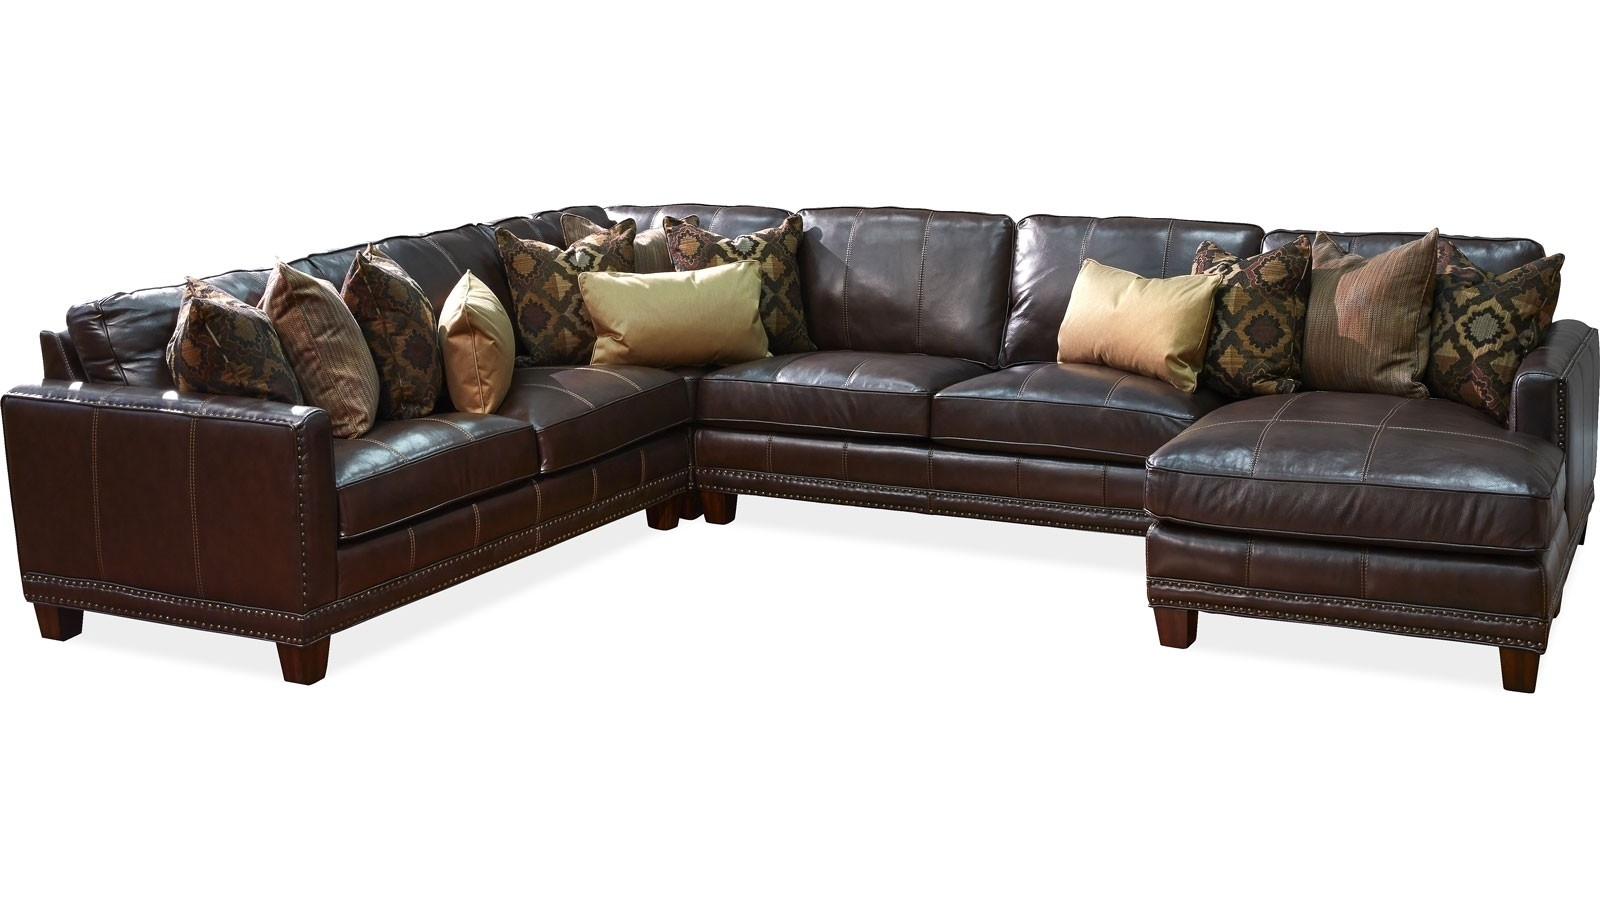 Sectional Sofa Gallery Furniture • Sectional Sofa Regarding Sectional Sofas Under (View 10 of 10)